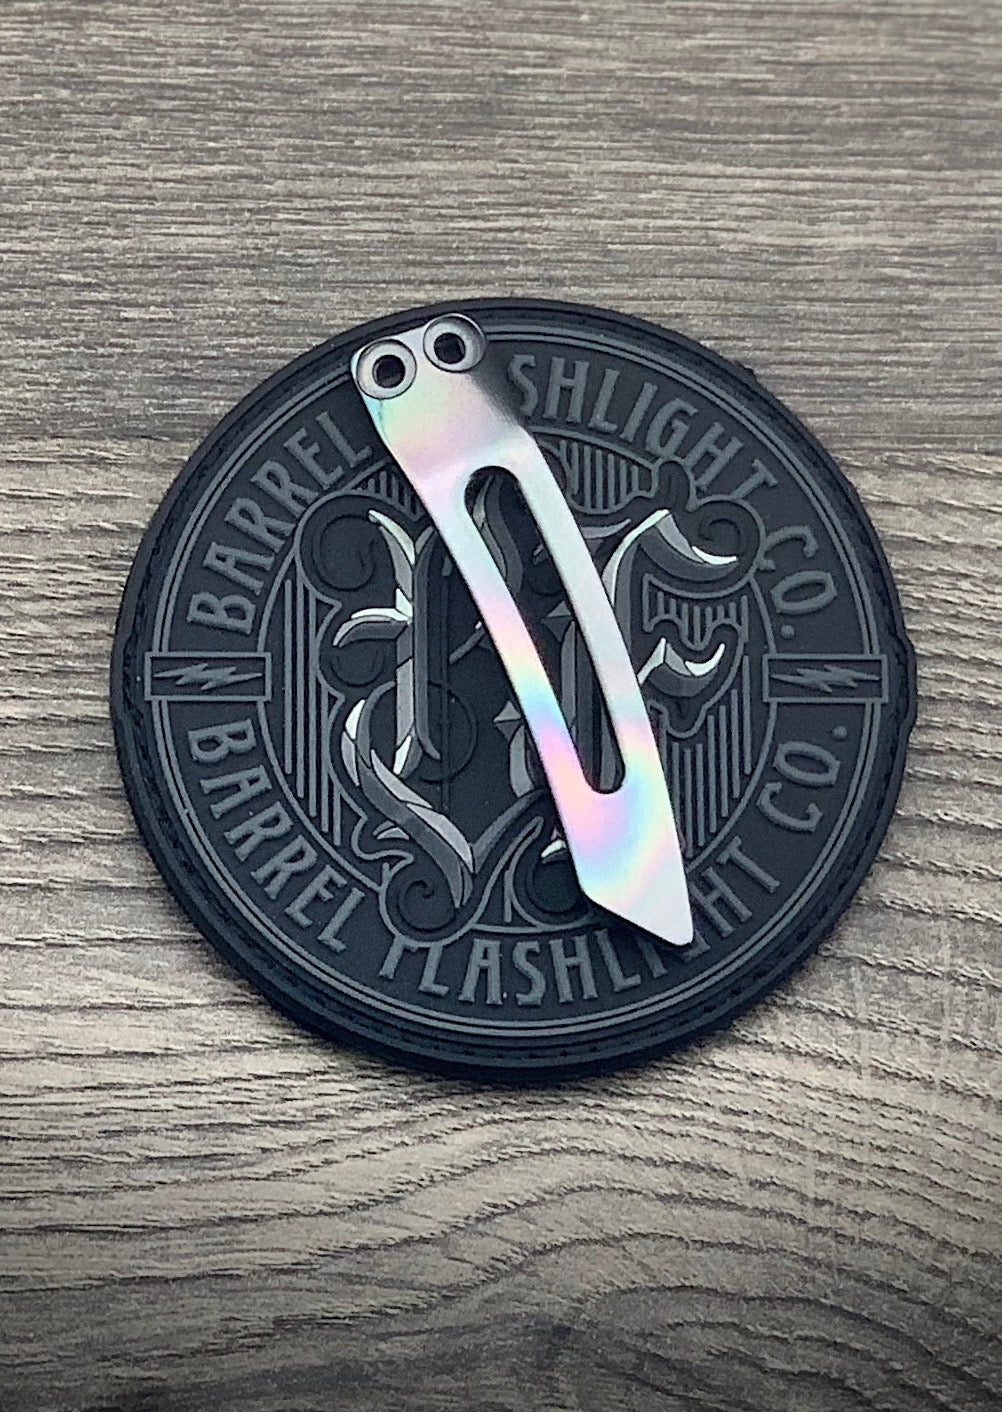 3D Milled Slotted Zirc Clip Oil Slick and Polished finish by Pete Gray